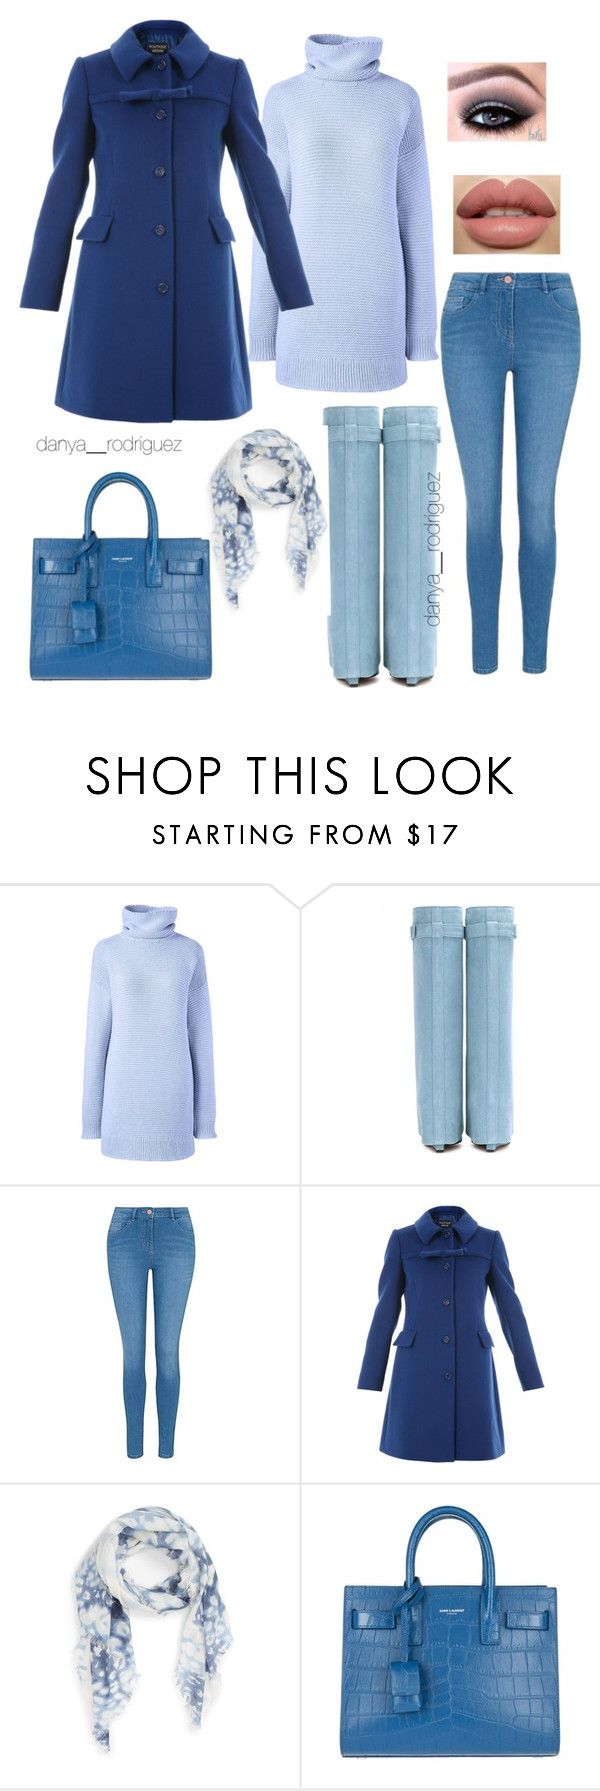 """""""Sin título #108"""" by sousou2578 on Polyvore featuring moda, Lands' End, George, Boutique Moschino, Nordstrom y Yves Saint Laurent"""